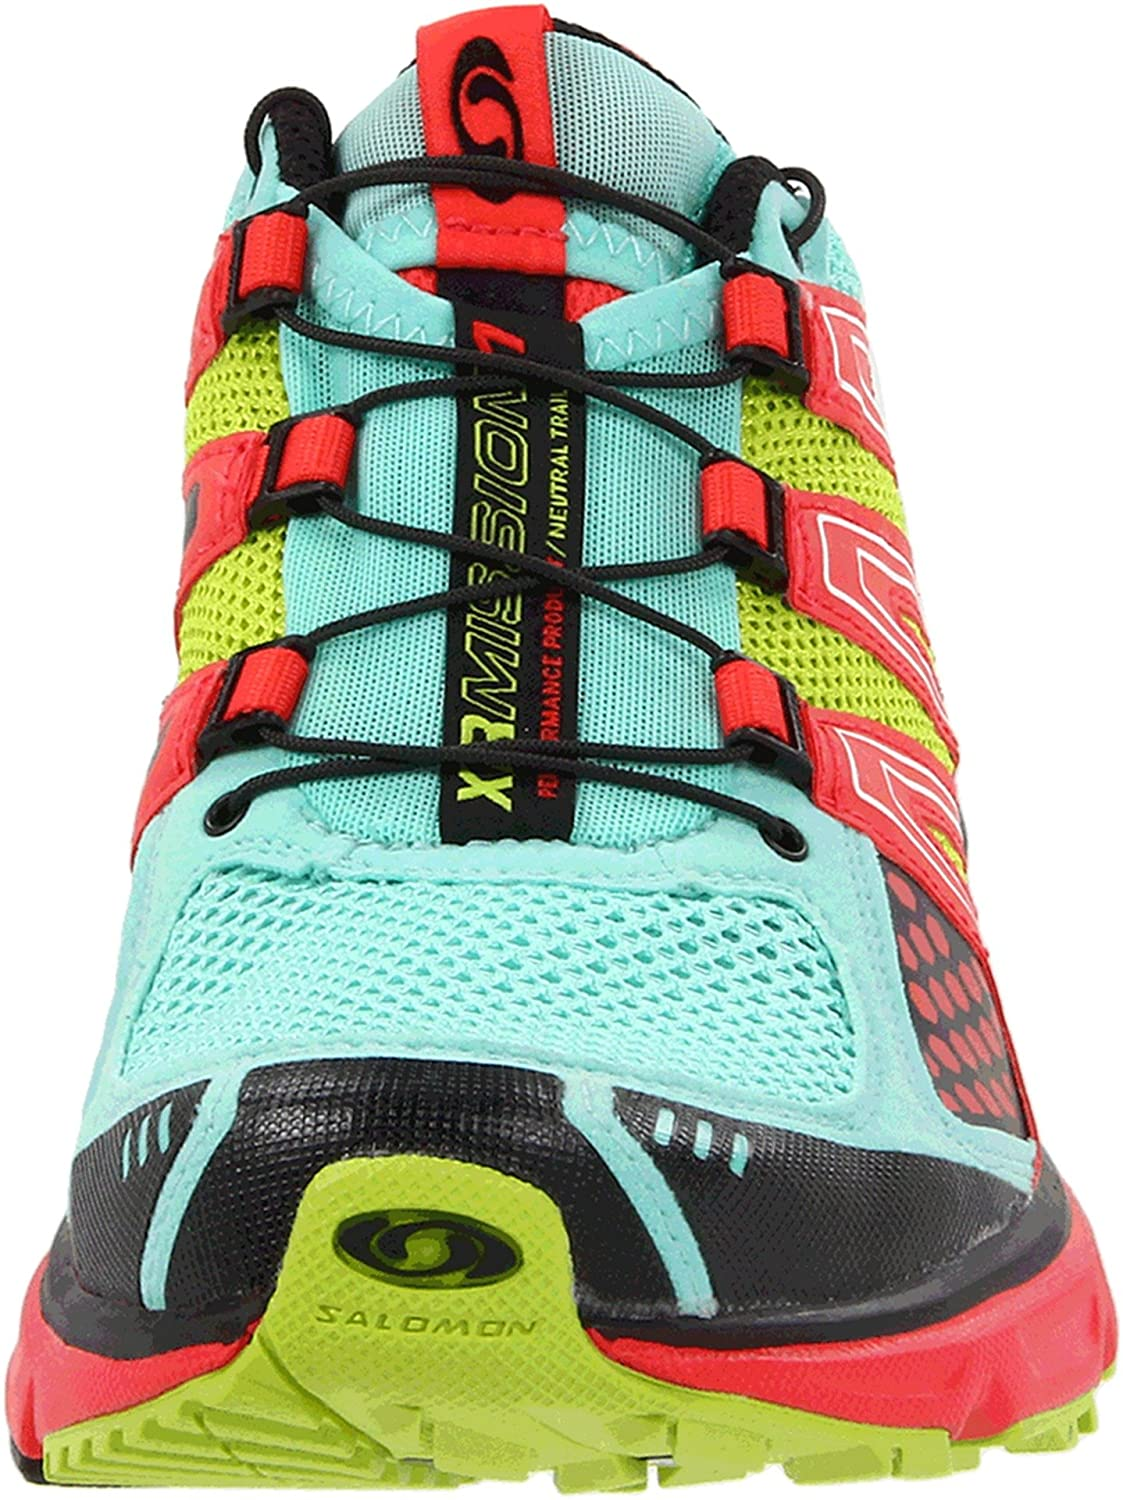 Salomon Women's XR Mission Running Shoe B0054PA2K4 9.5 B(M) US|Celedon/Papaya/Pop Green